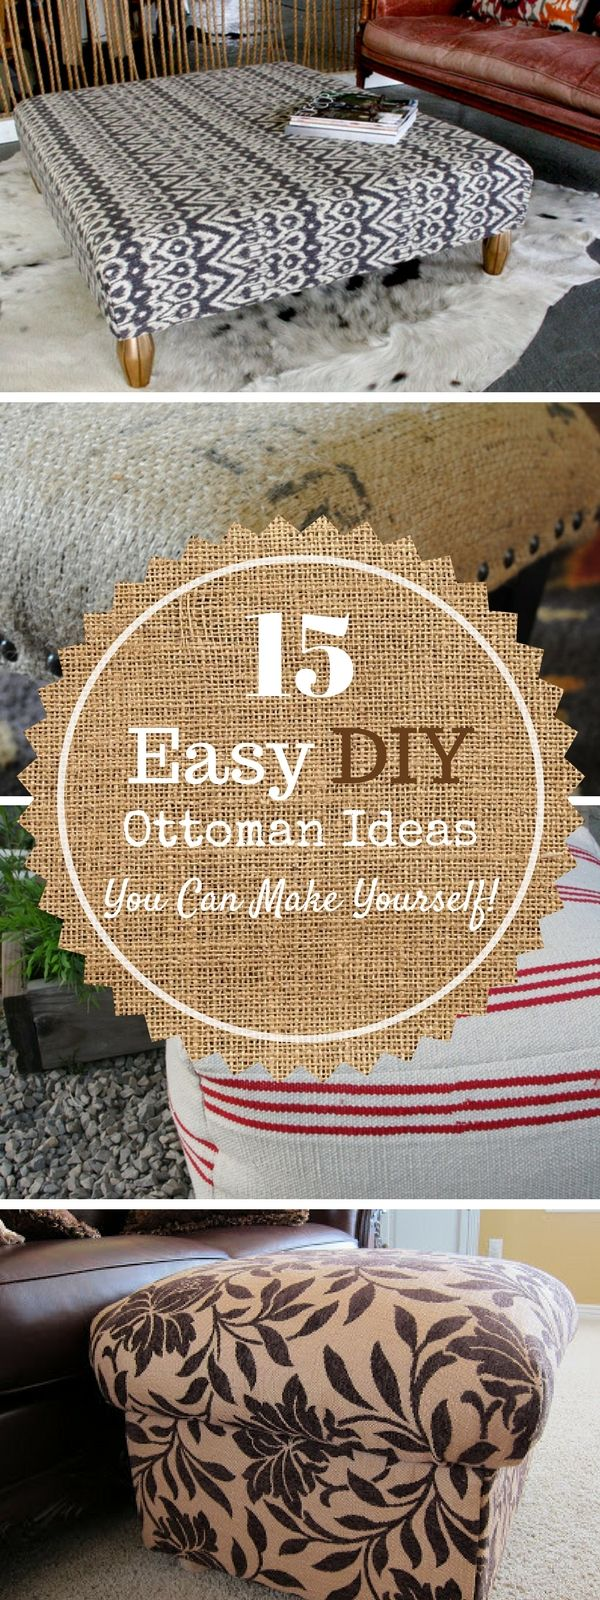 Check out 15 easy DIY ottoman ideas you can make yourself @istandarddesign